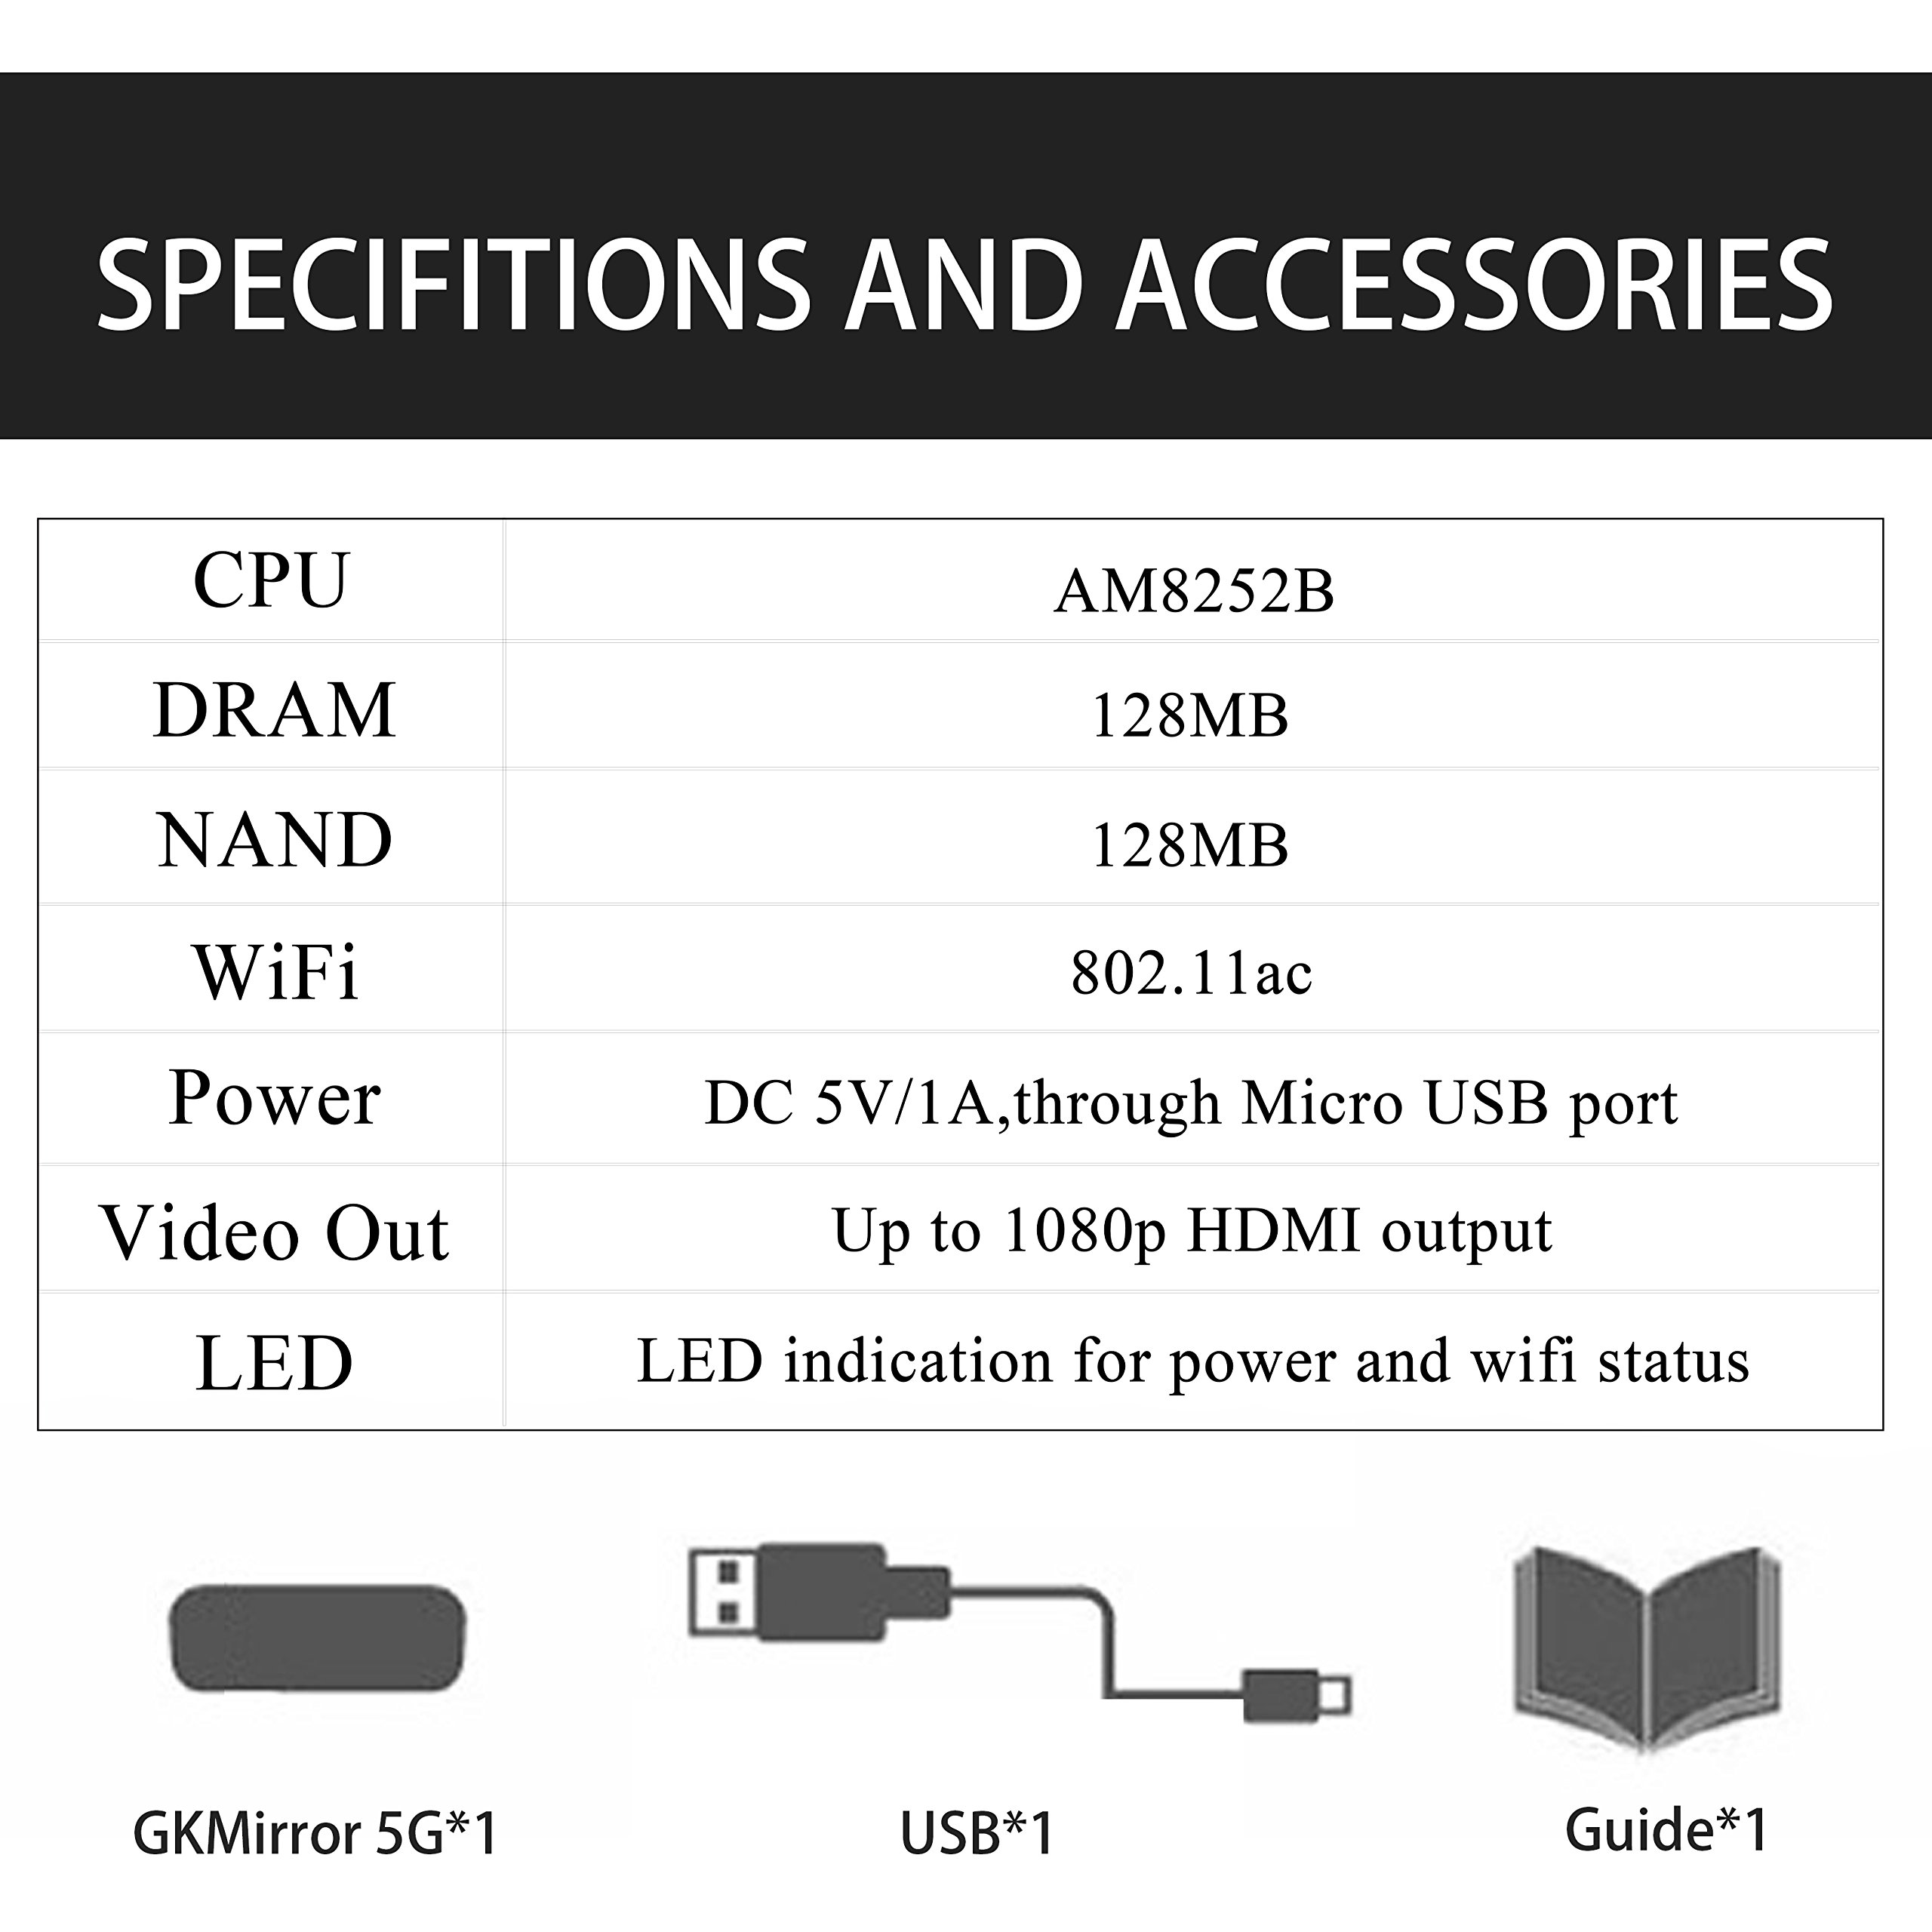 【GKMirror 5G】 Ezcast 5G Wifi Display Dongle Digital HDMI Streamer HD Media Chrome Cast for Youtube Airplay Miracast(Champagne Gold)